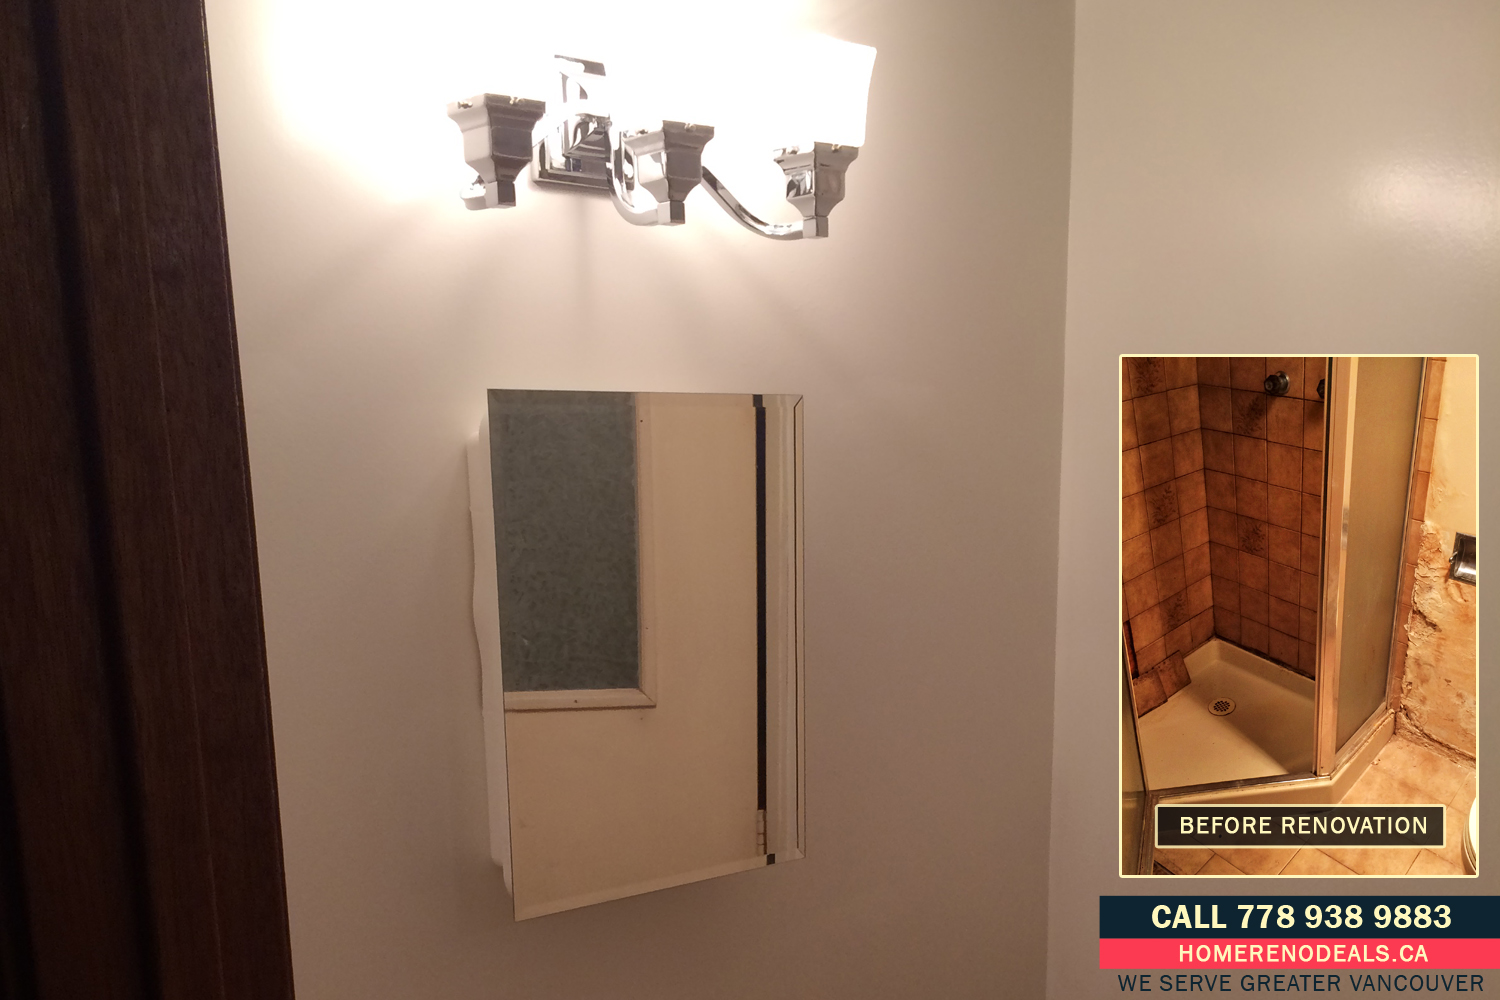 Bathroom light fixture and medicine cabinet installed